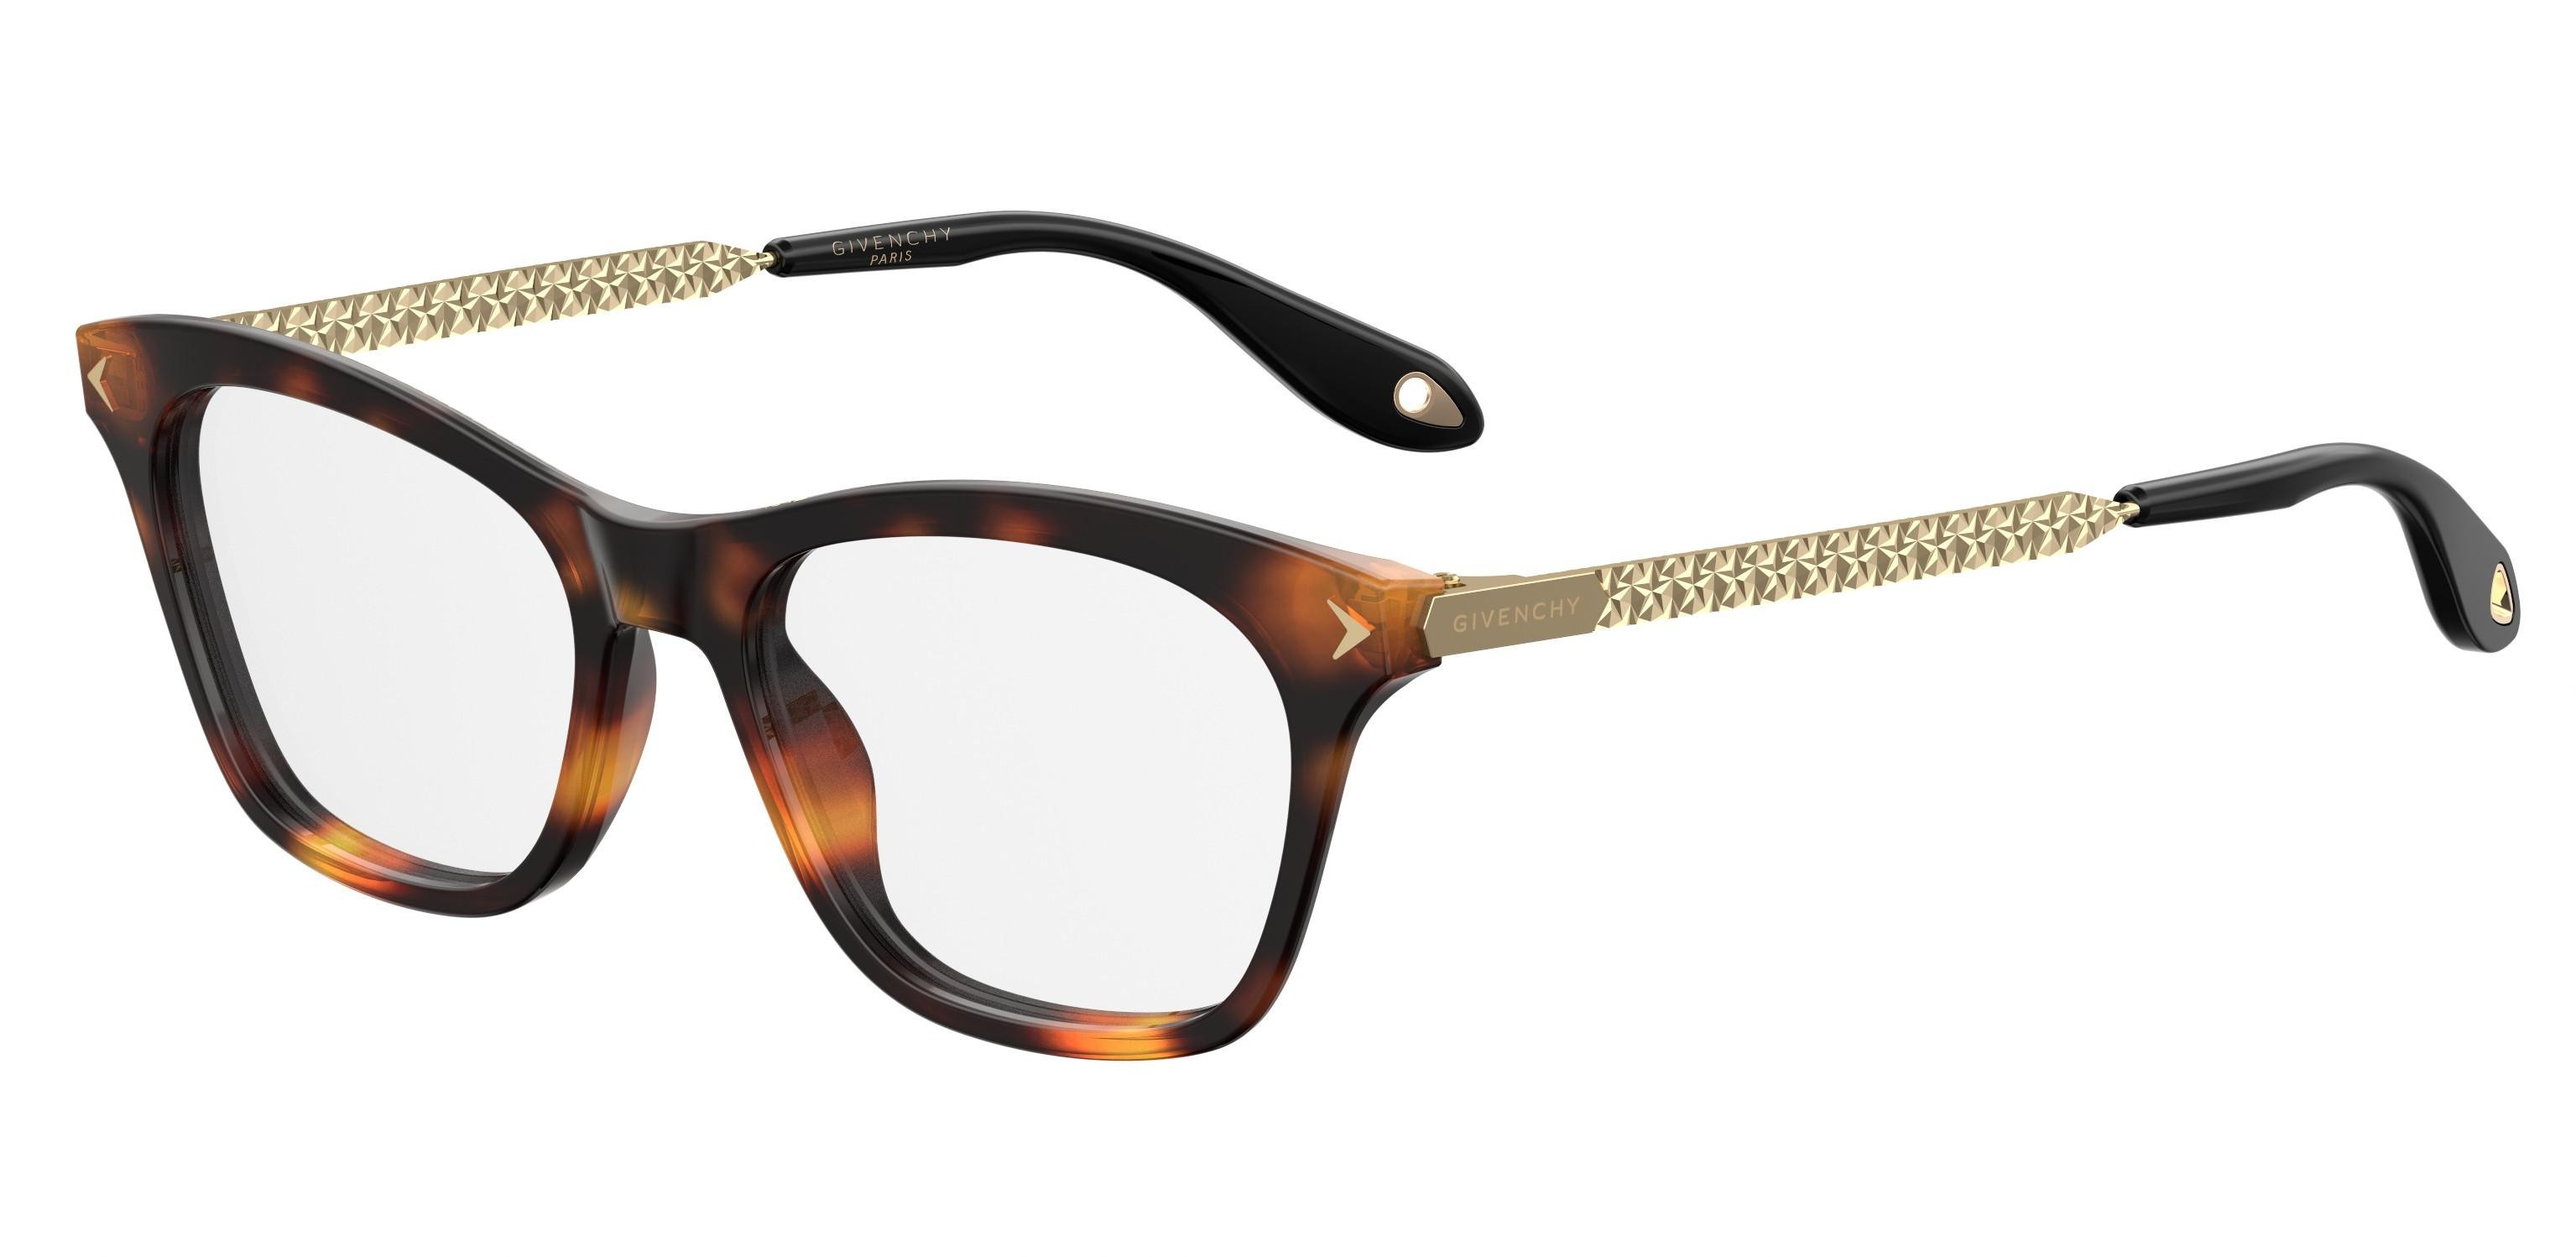 Givenchy eyeglasses STAR GV 0081